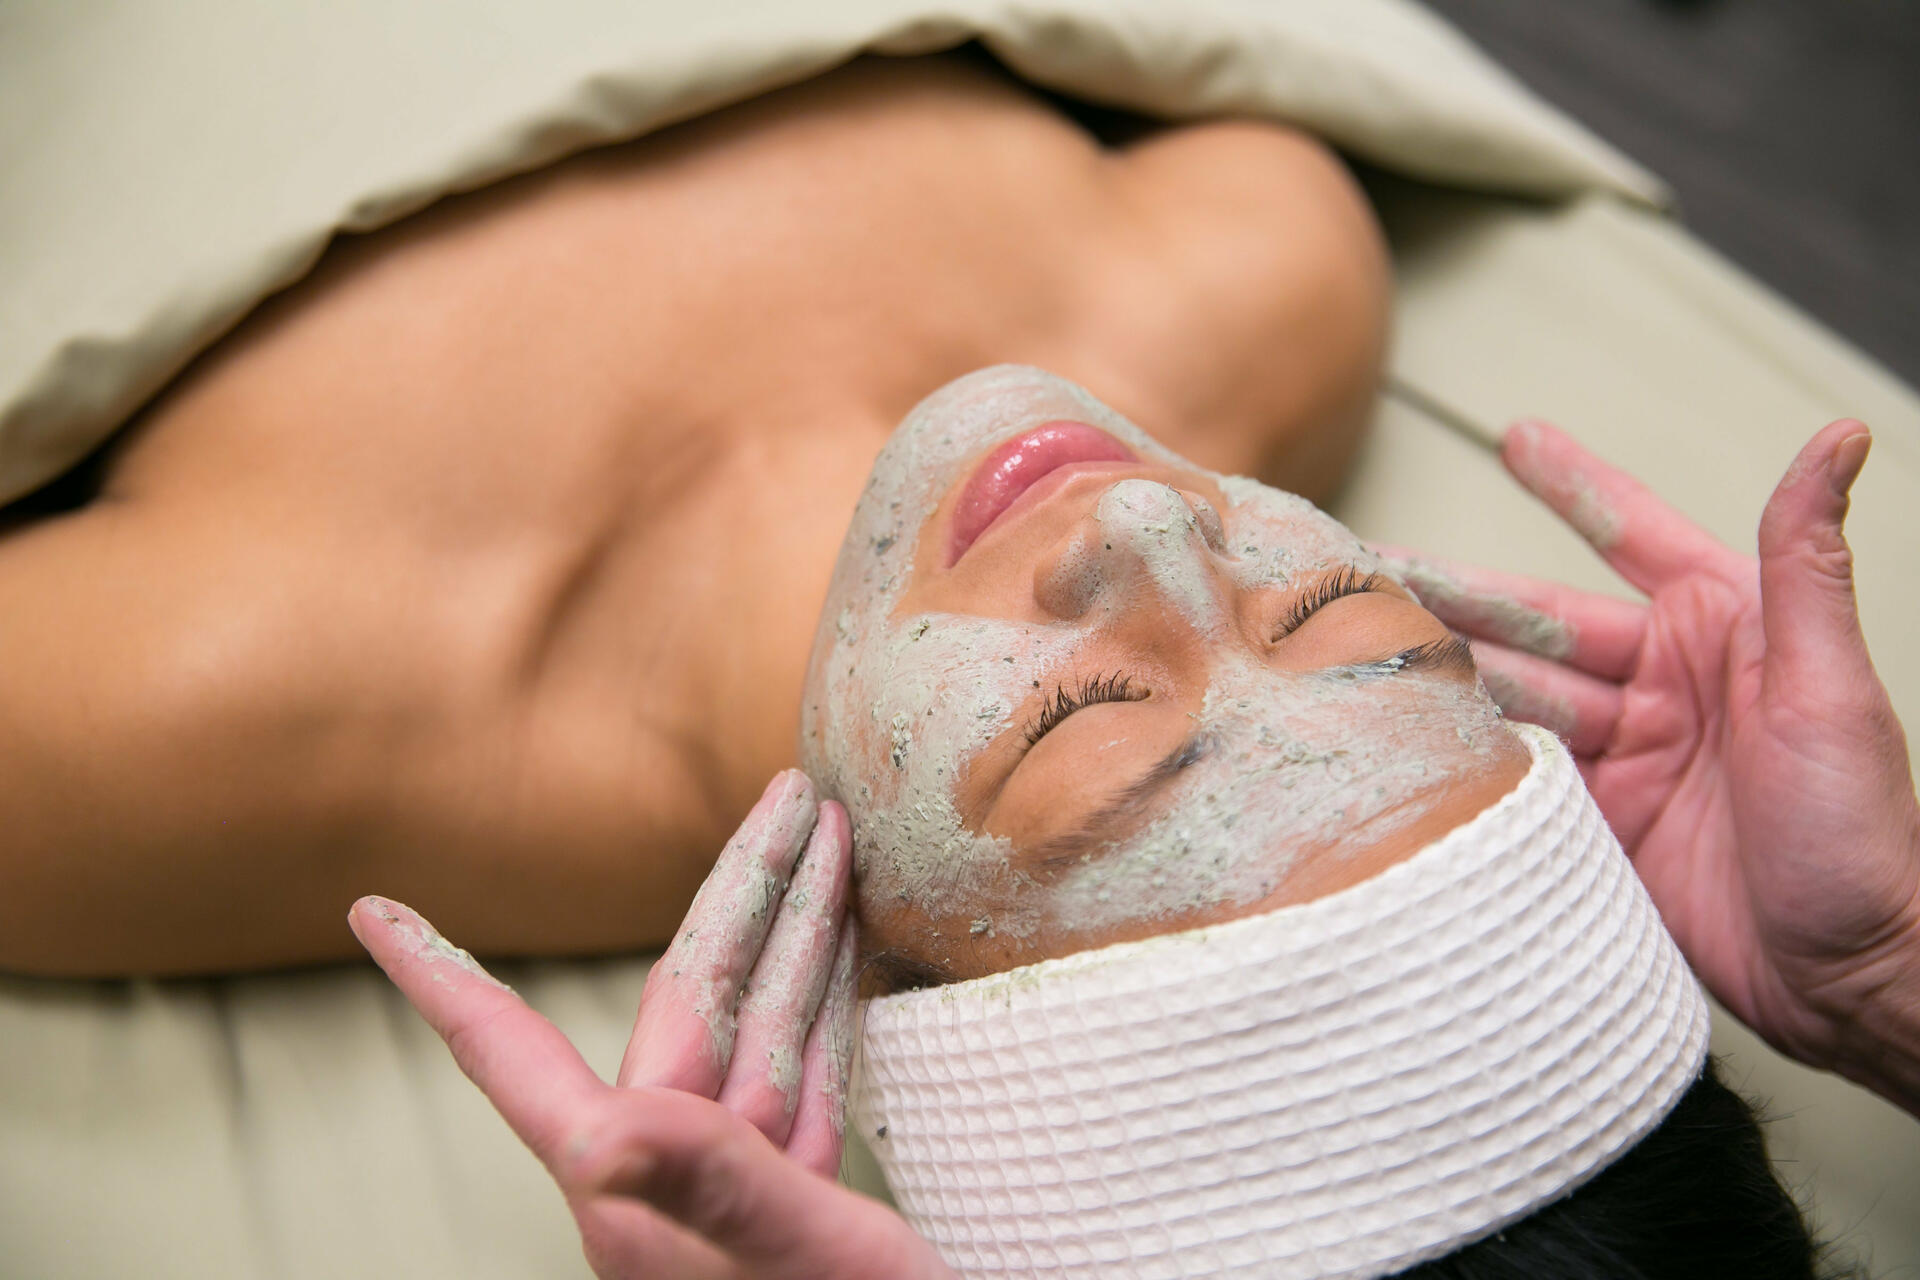 Woman receiving spa facial treatment